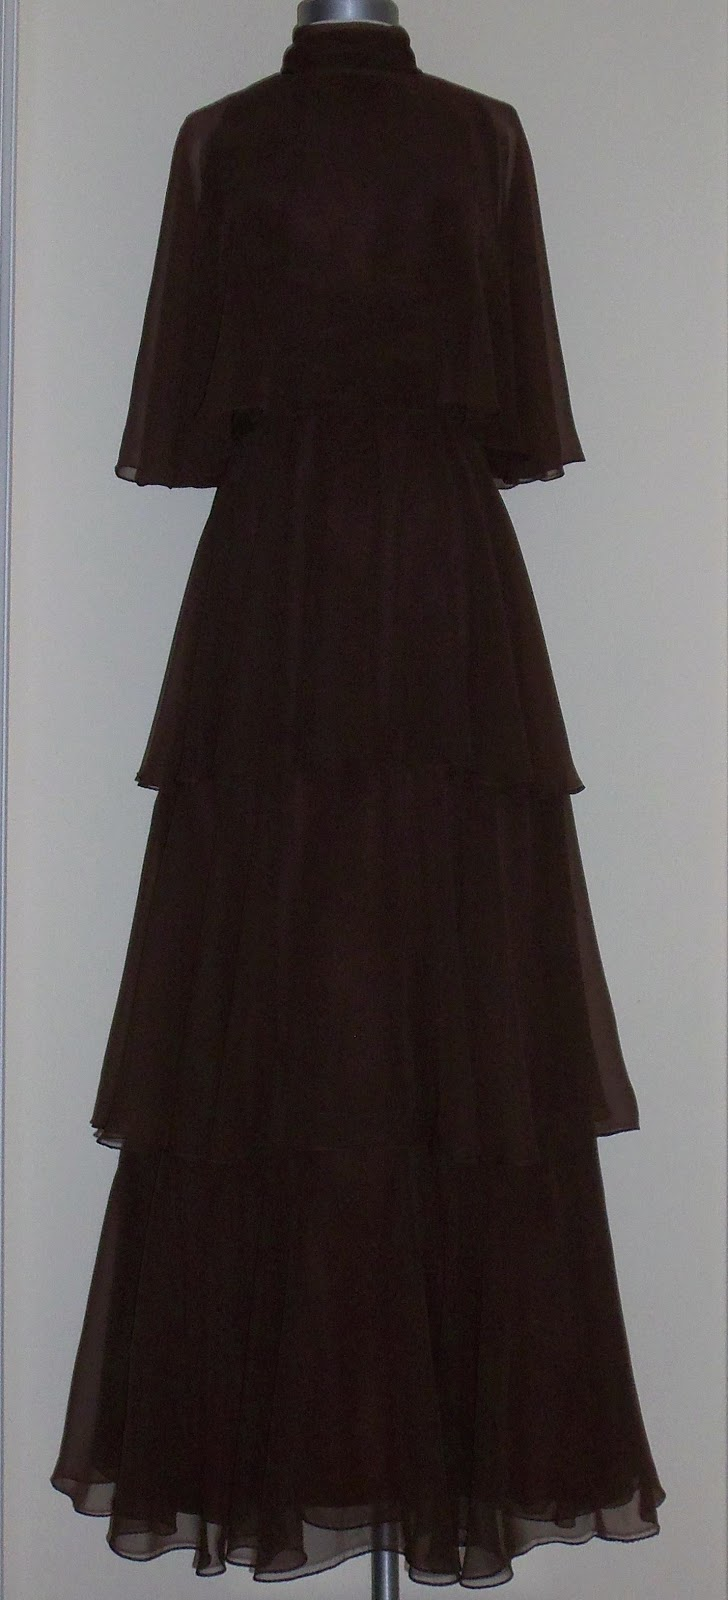 Thrifty Chic Shop: Vintage Brown Tiered Gown by Saks Fifth Ave